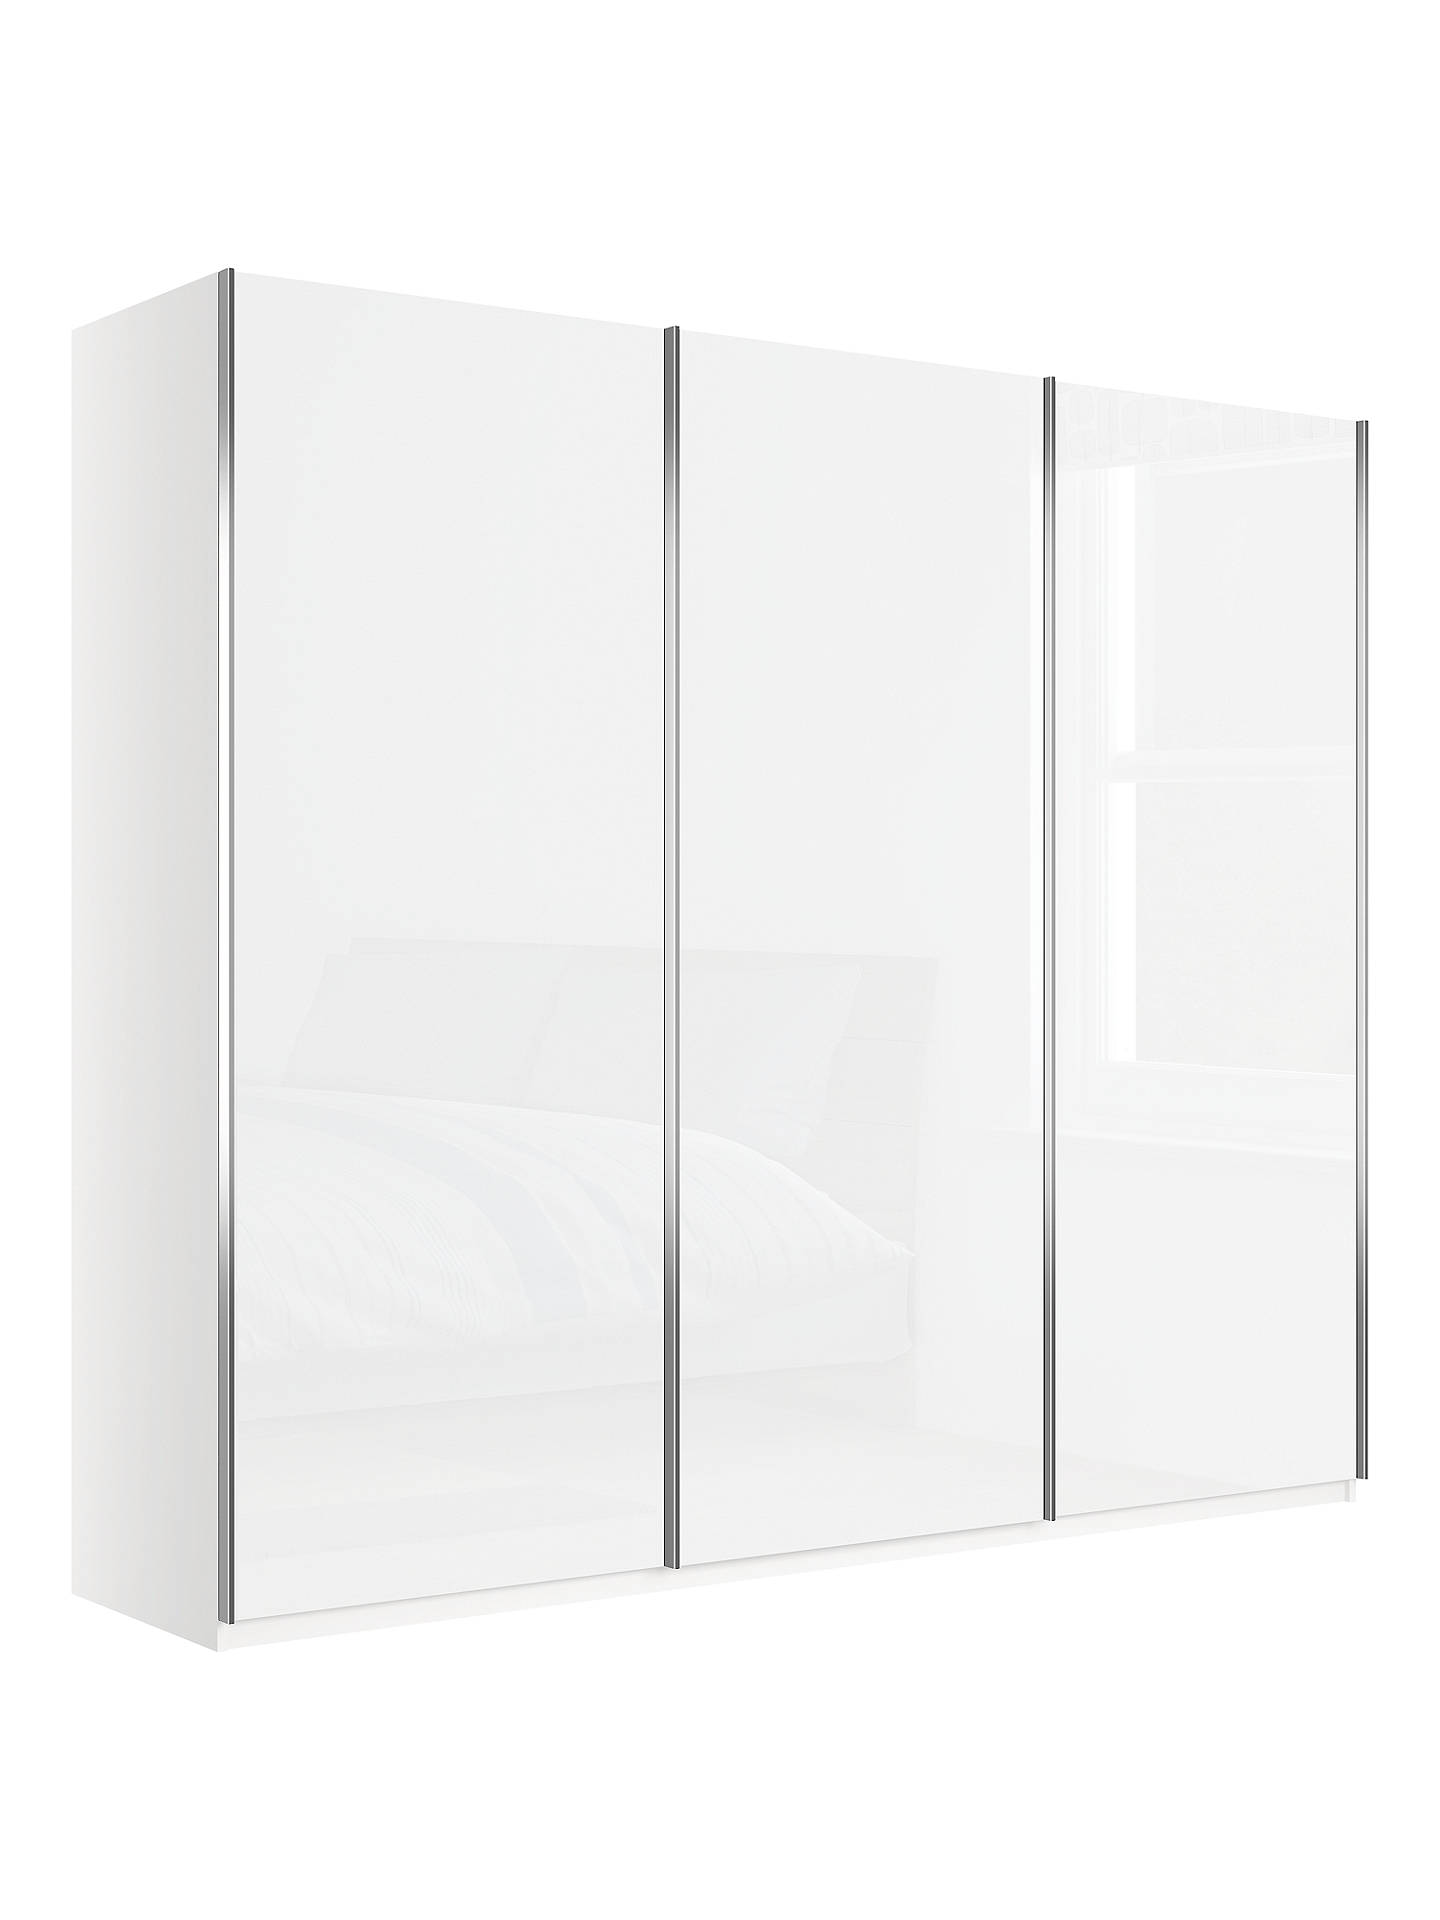 BuyJohn Lewis & Partners Elstra 250cm Wardrobe with White Glass Sliding Doors, Alpine White Online at johnlewis.com